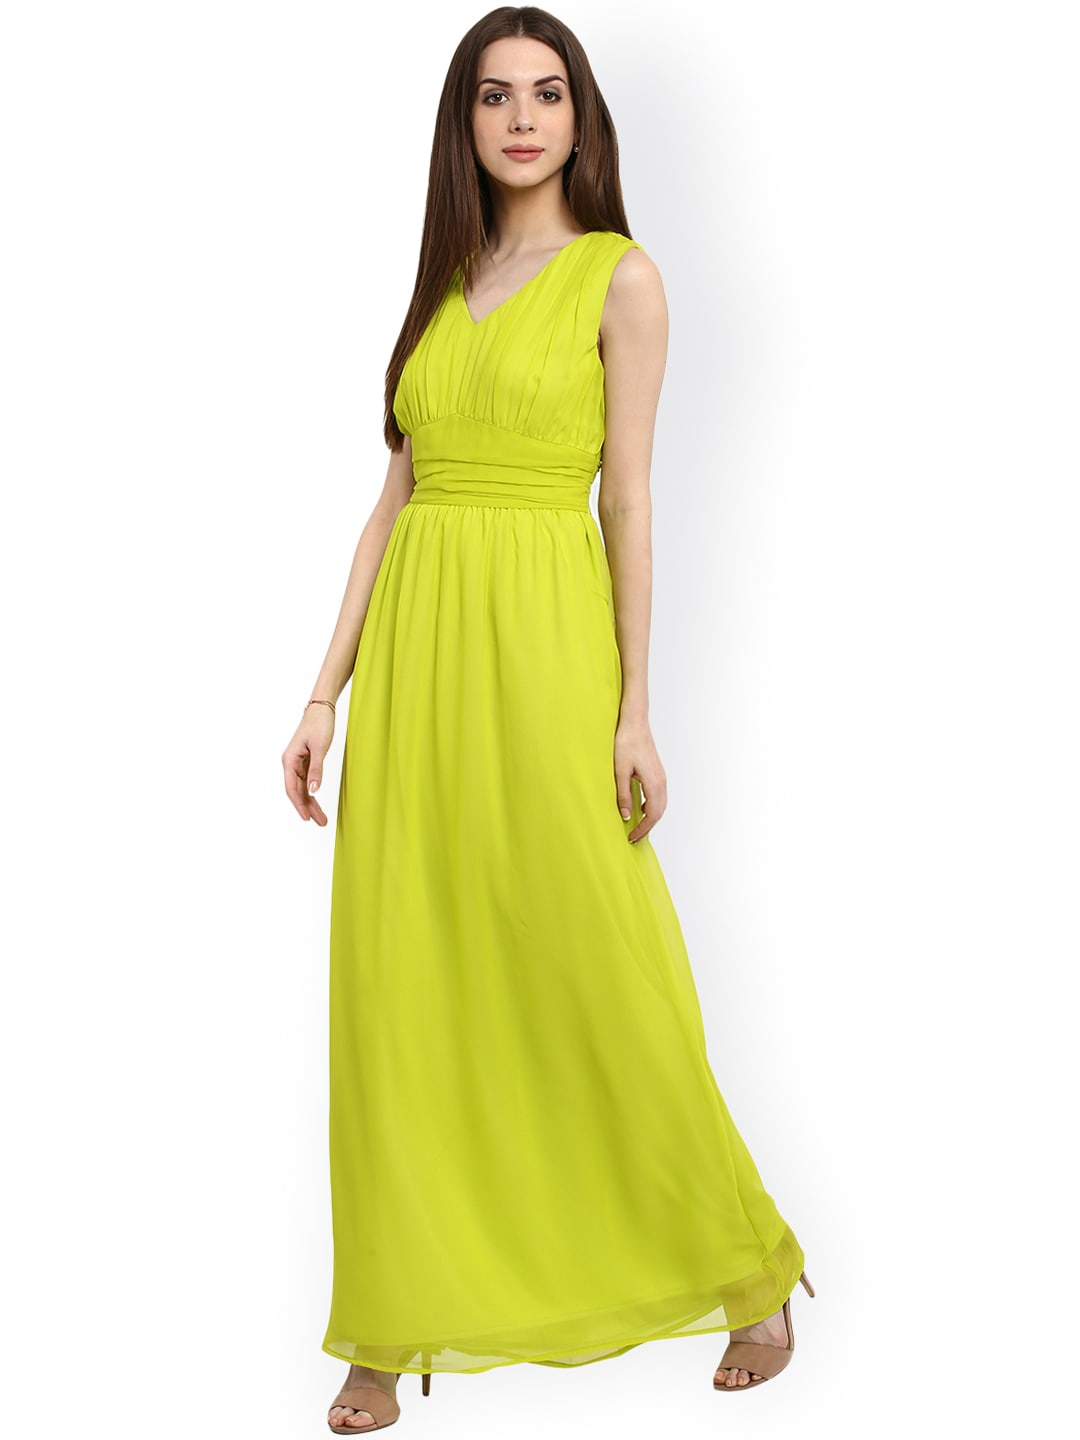 7fa6ccfdb33 Gowns - Shop for Gown Online at Best Price